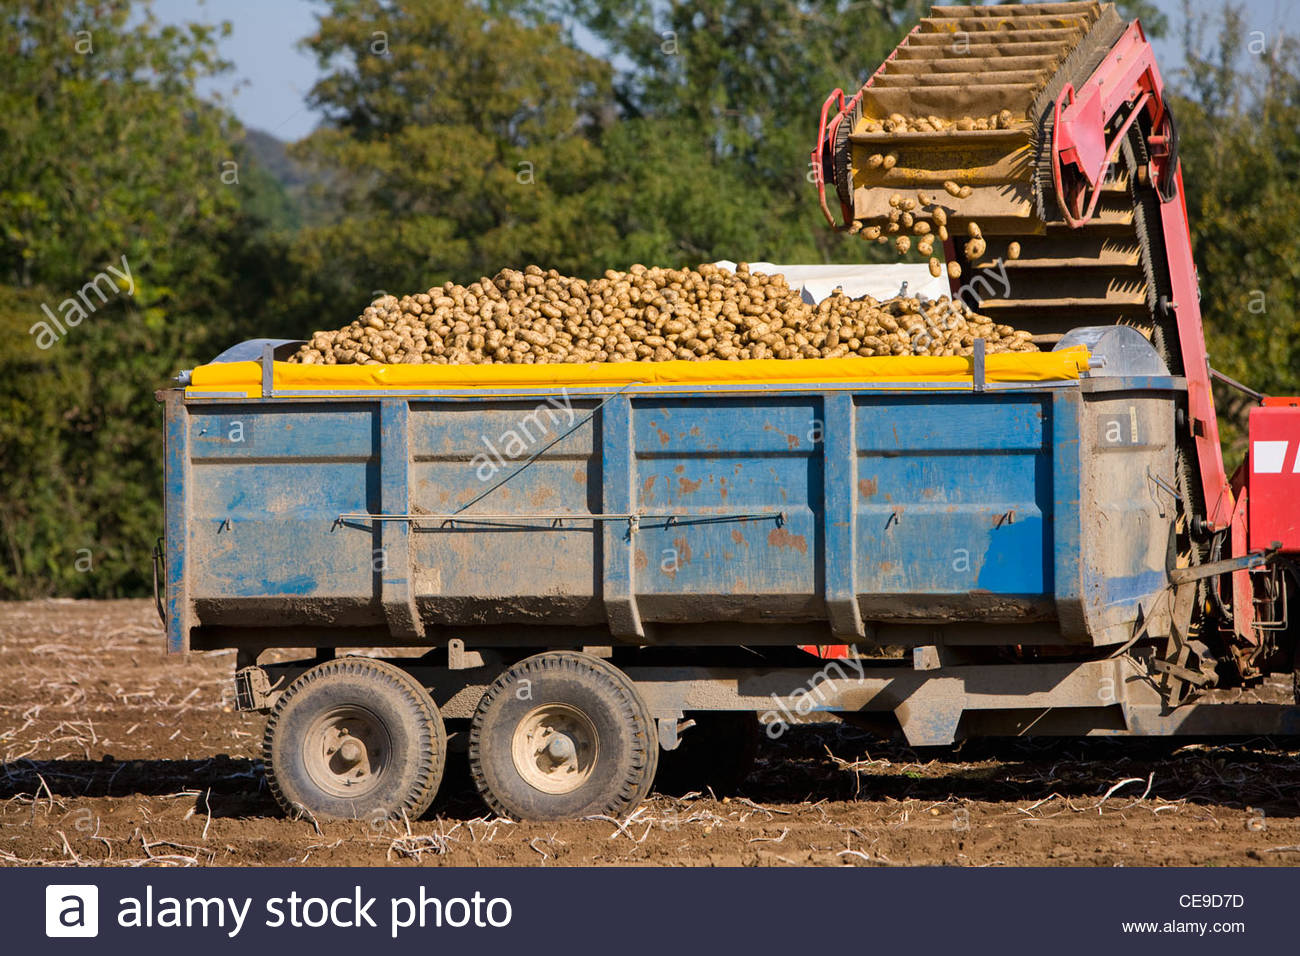 Potatoes being emptied into trailer in sunny, rural field Stock Photo